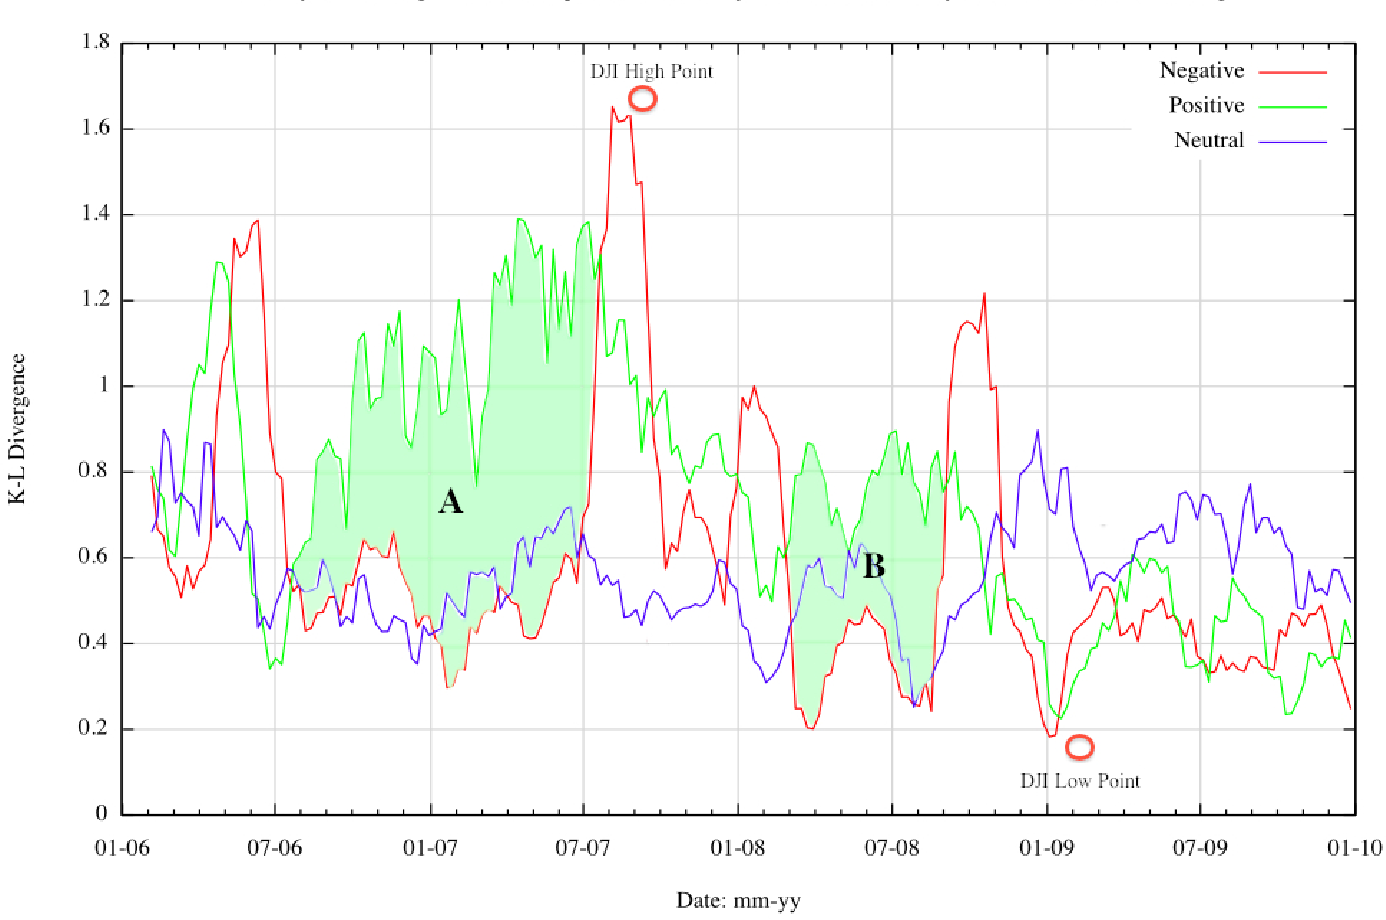 Figure 2 for Mining the Web for the Voice of the Herd to Track Stock Market Bubbles